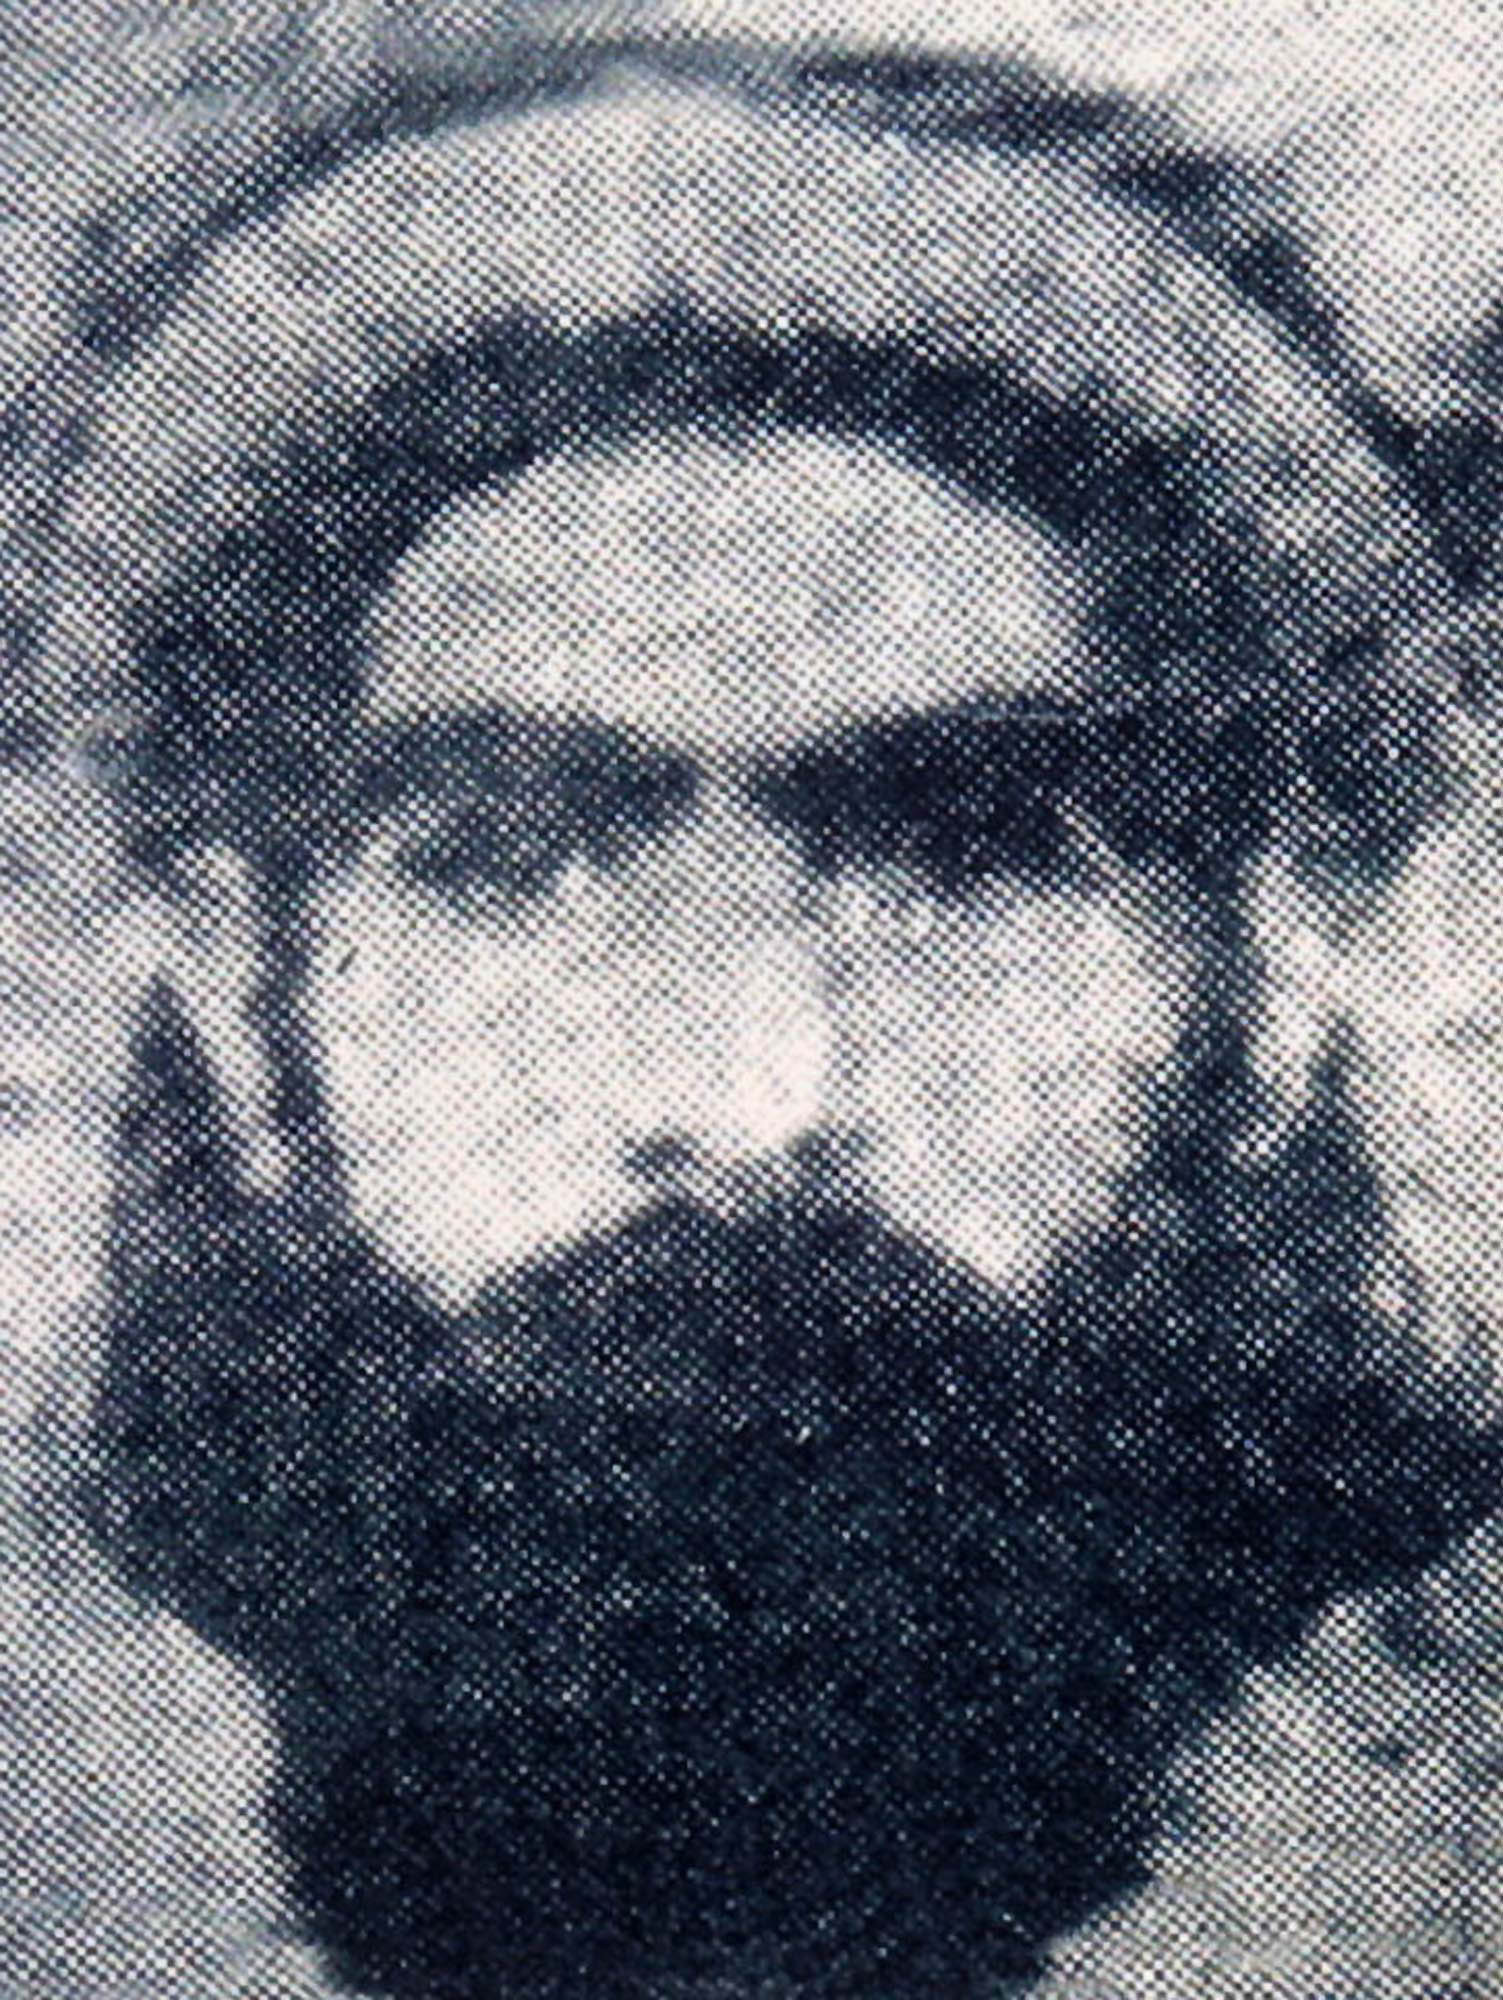 <b>$10 million: Mullah Omar</b>                                   Mullah Mohammed Omar is the spiritual leader of the Taliban. He led Afghanistan as the Head of the Supreme Council of Afghanistan from 1996-2001, and is wanted by the U.S. for sheltering Osama bin-Laden and other al-Qaeda militants leading up to the attacks on September 11, 2001.